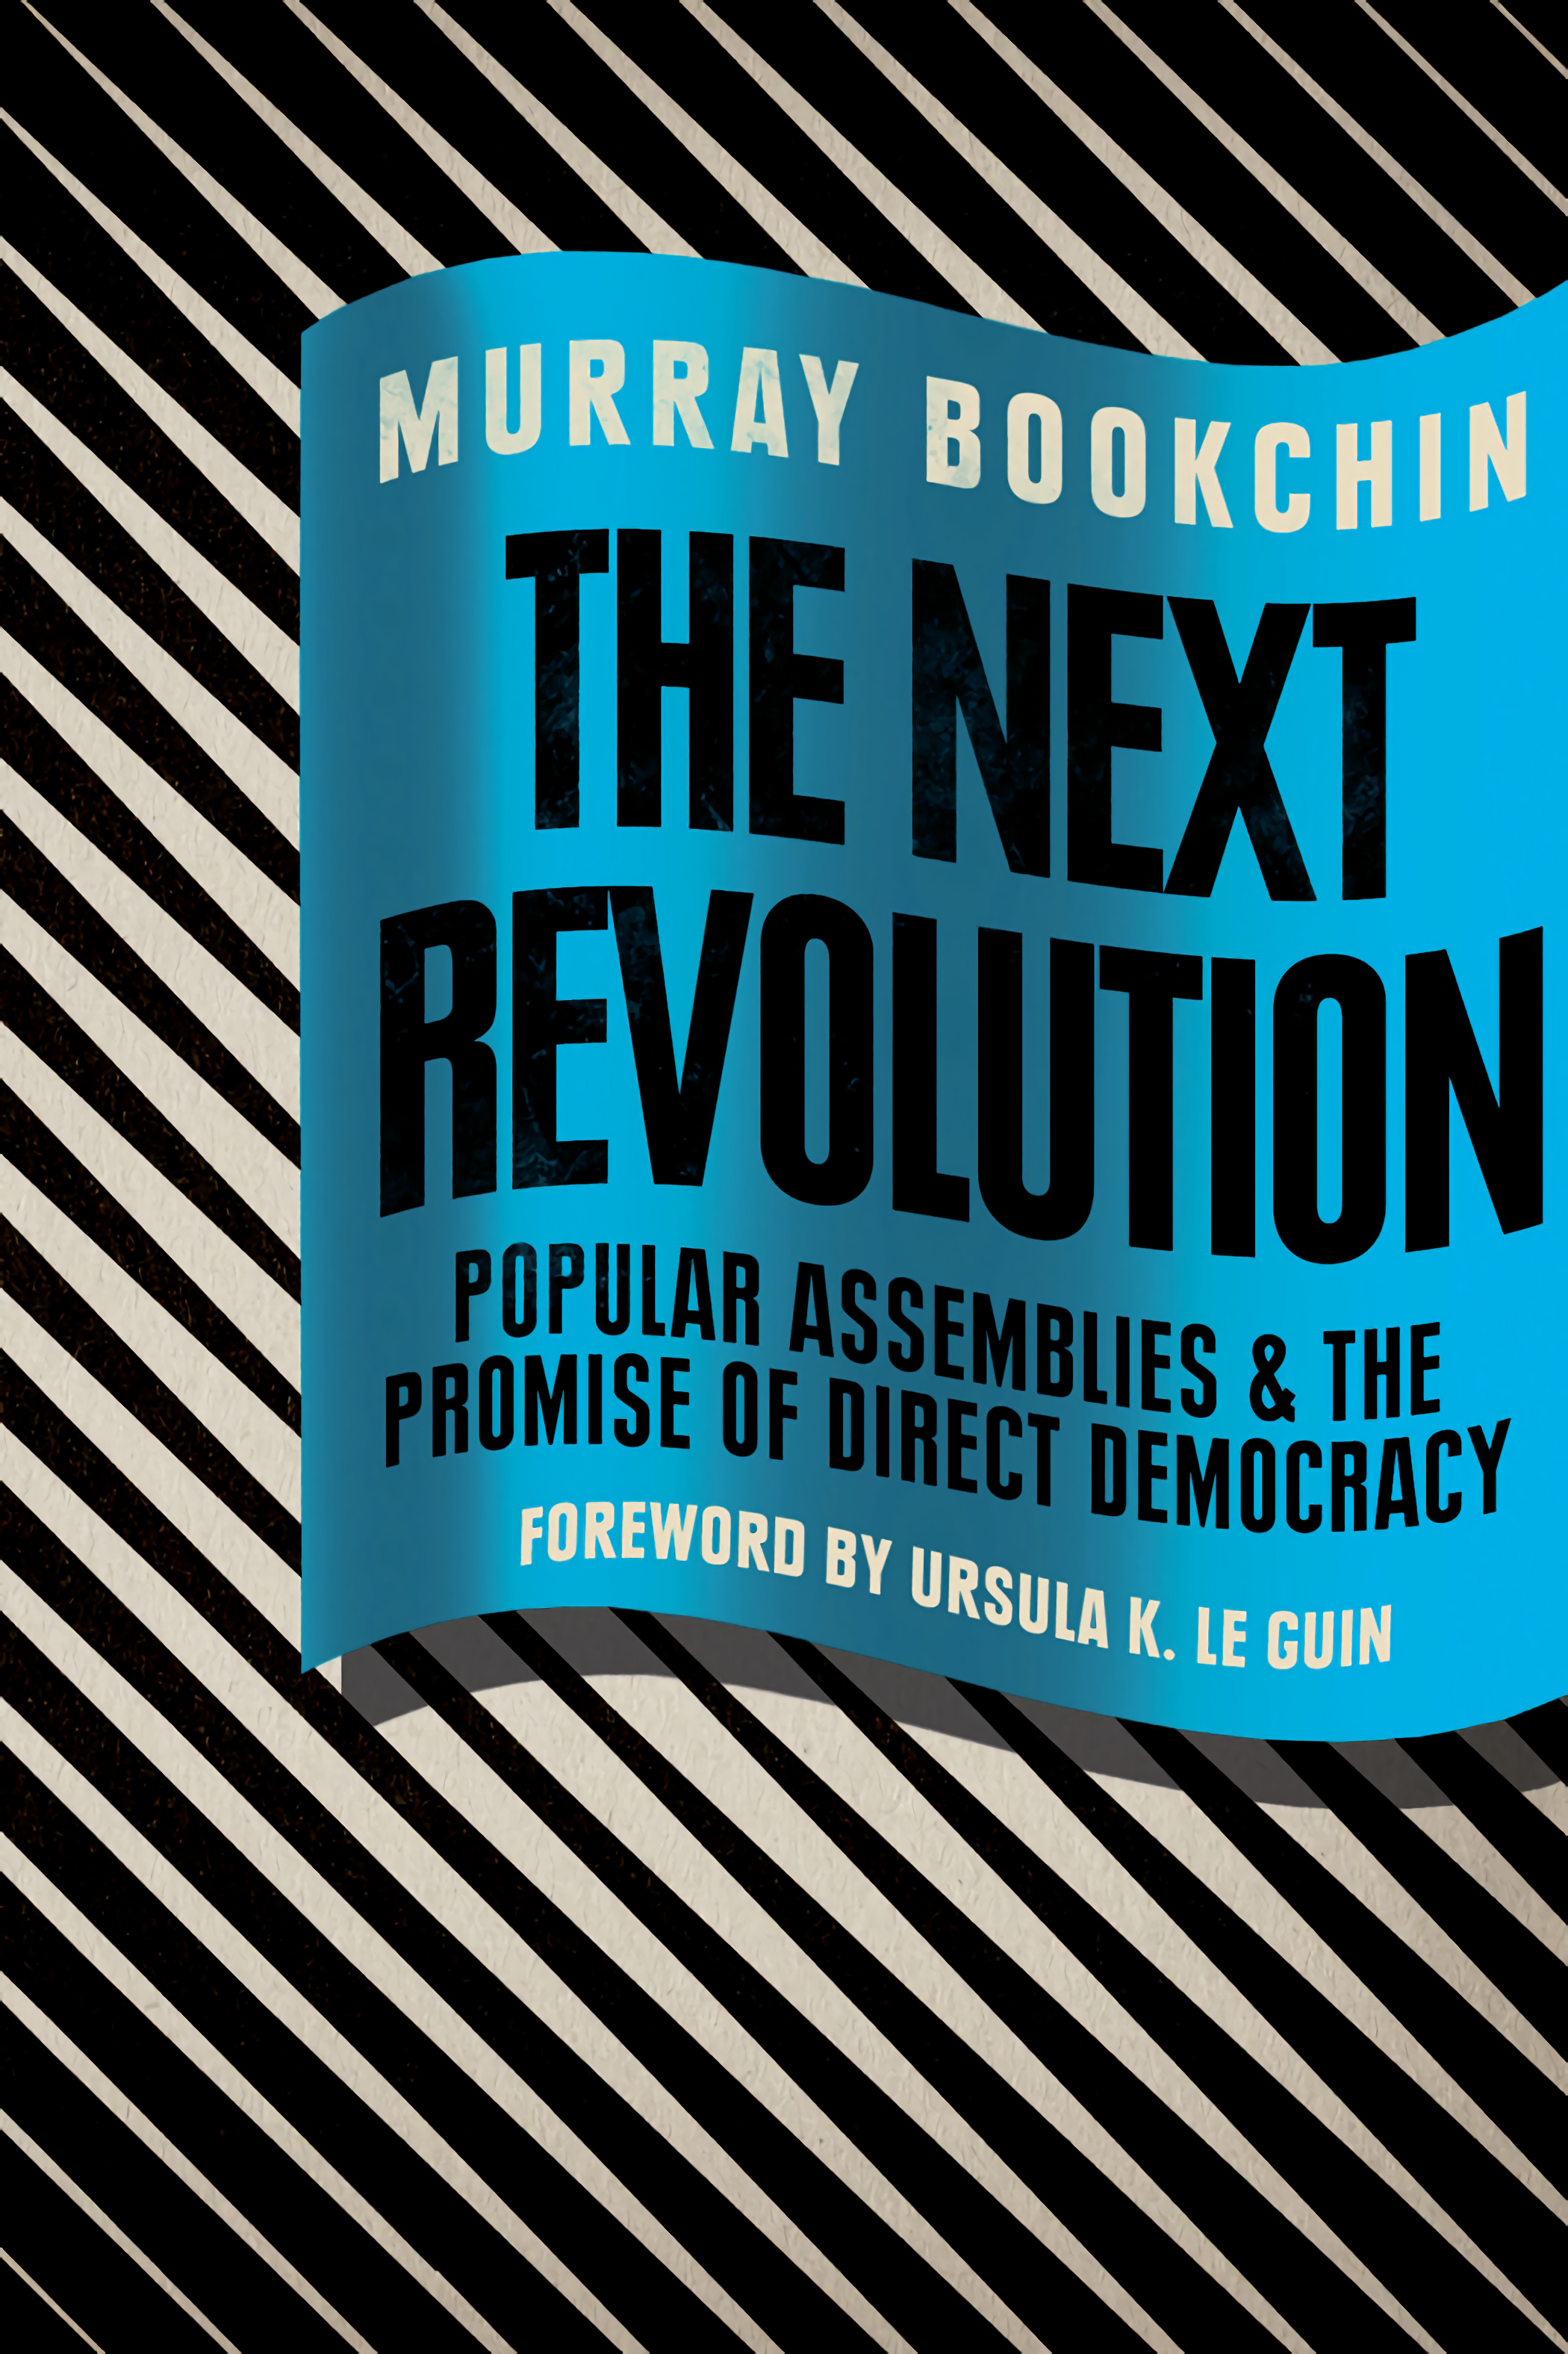 m-b-murray-bookchin-ursula-k-le-guin-the-next-revo-1.png